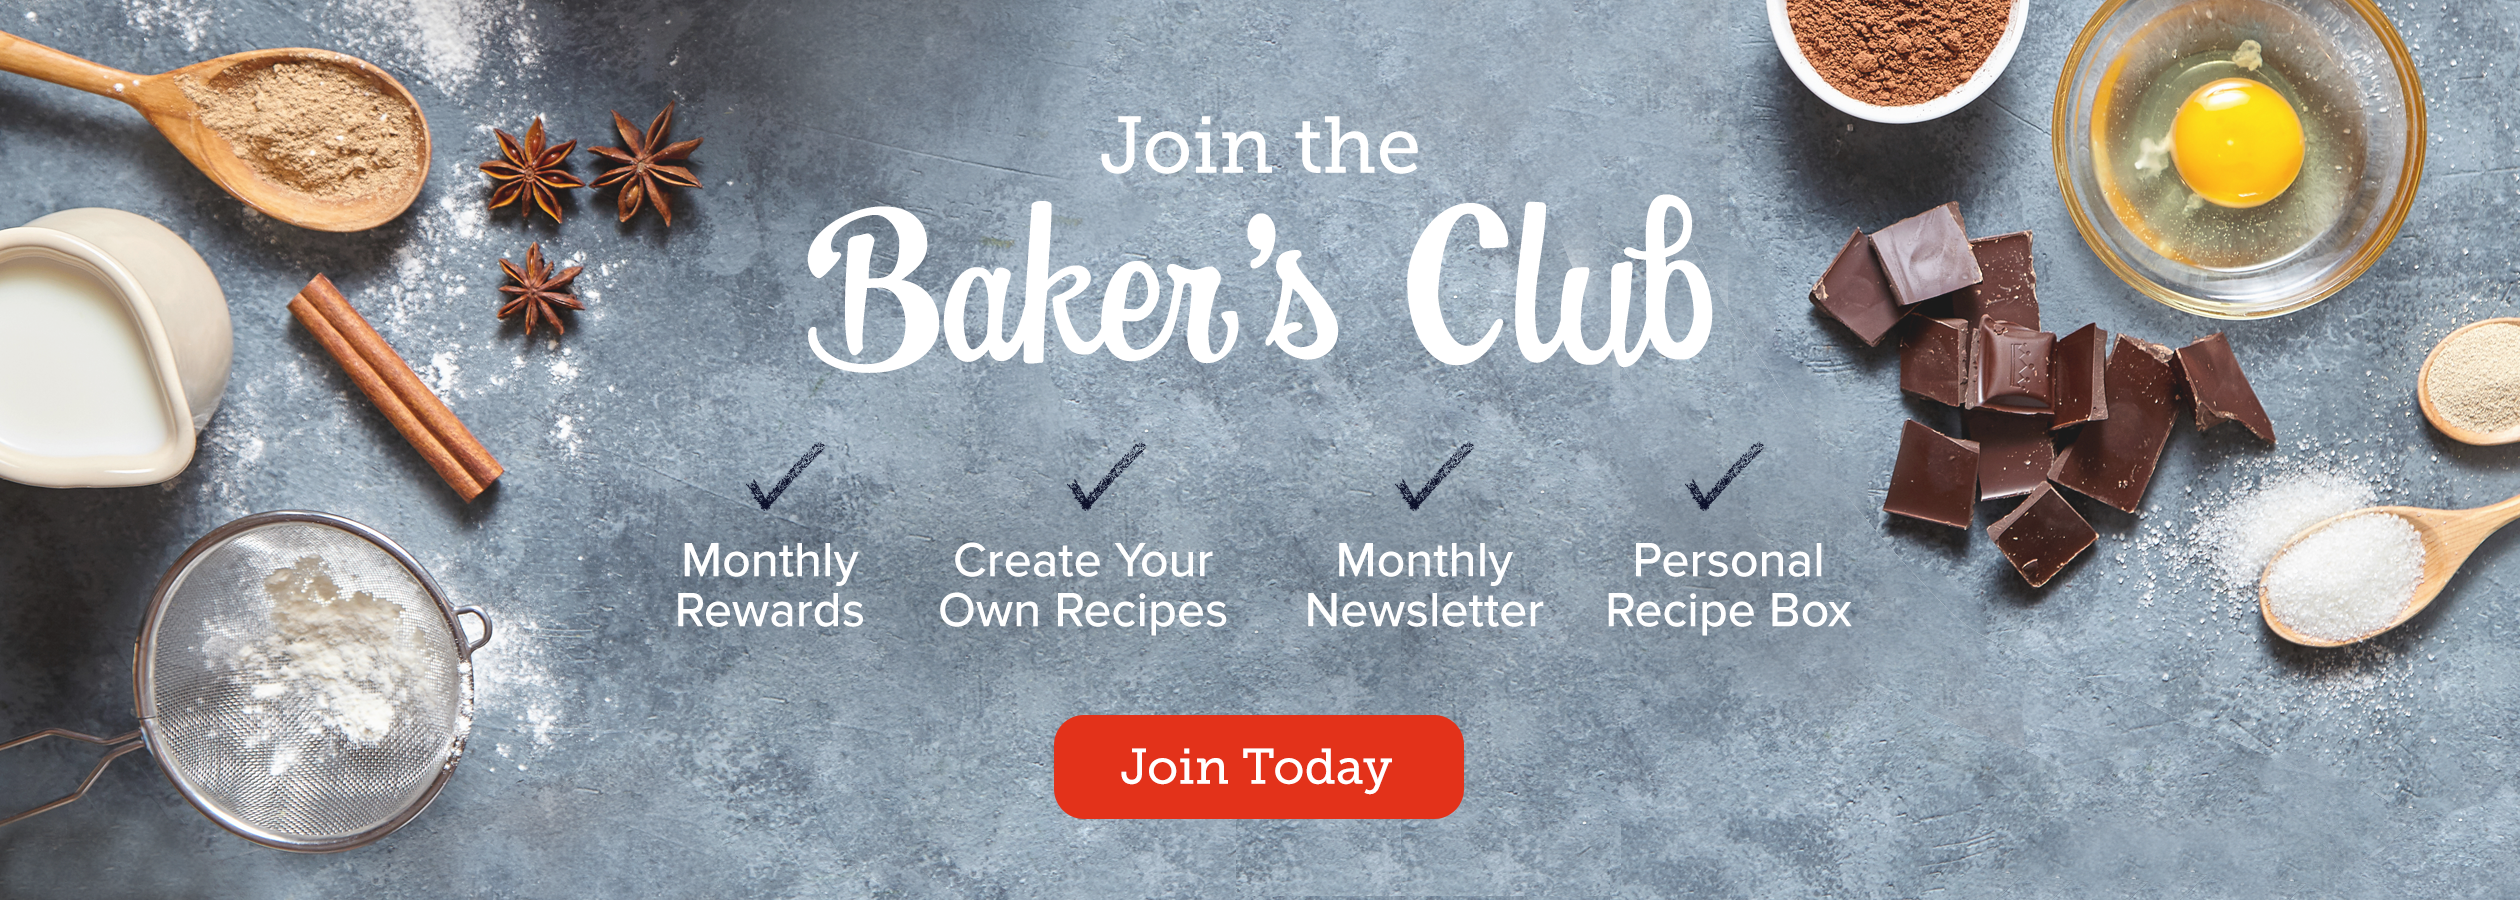 Join the Duncan Hines Baker's Club